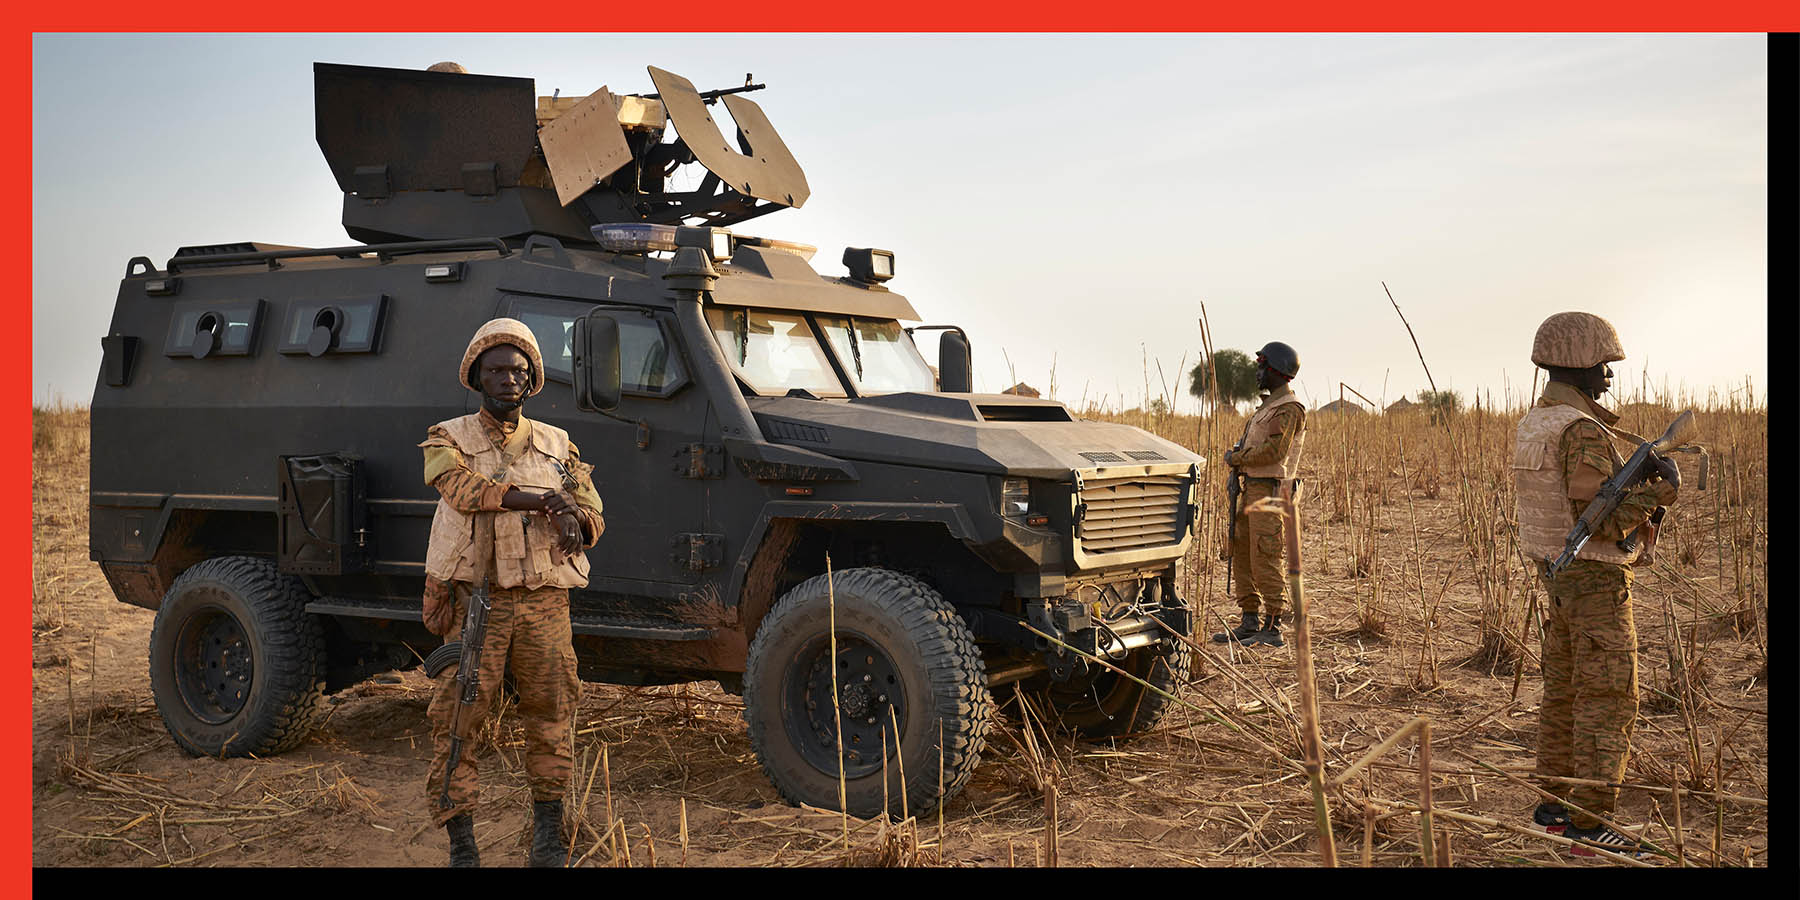 A group of soldiers from the Burkina Faso Army patrols a rural area during a joint operation with the French Army in the Soum region along the border with Mali on Nov. 9.